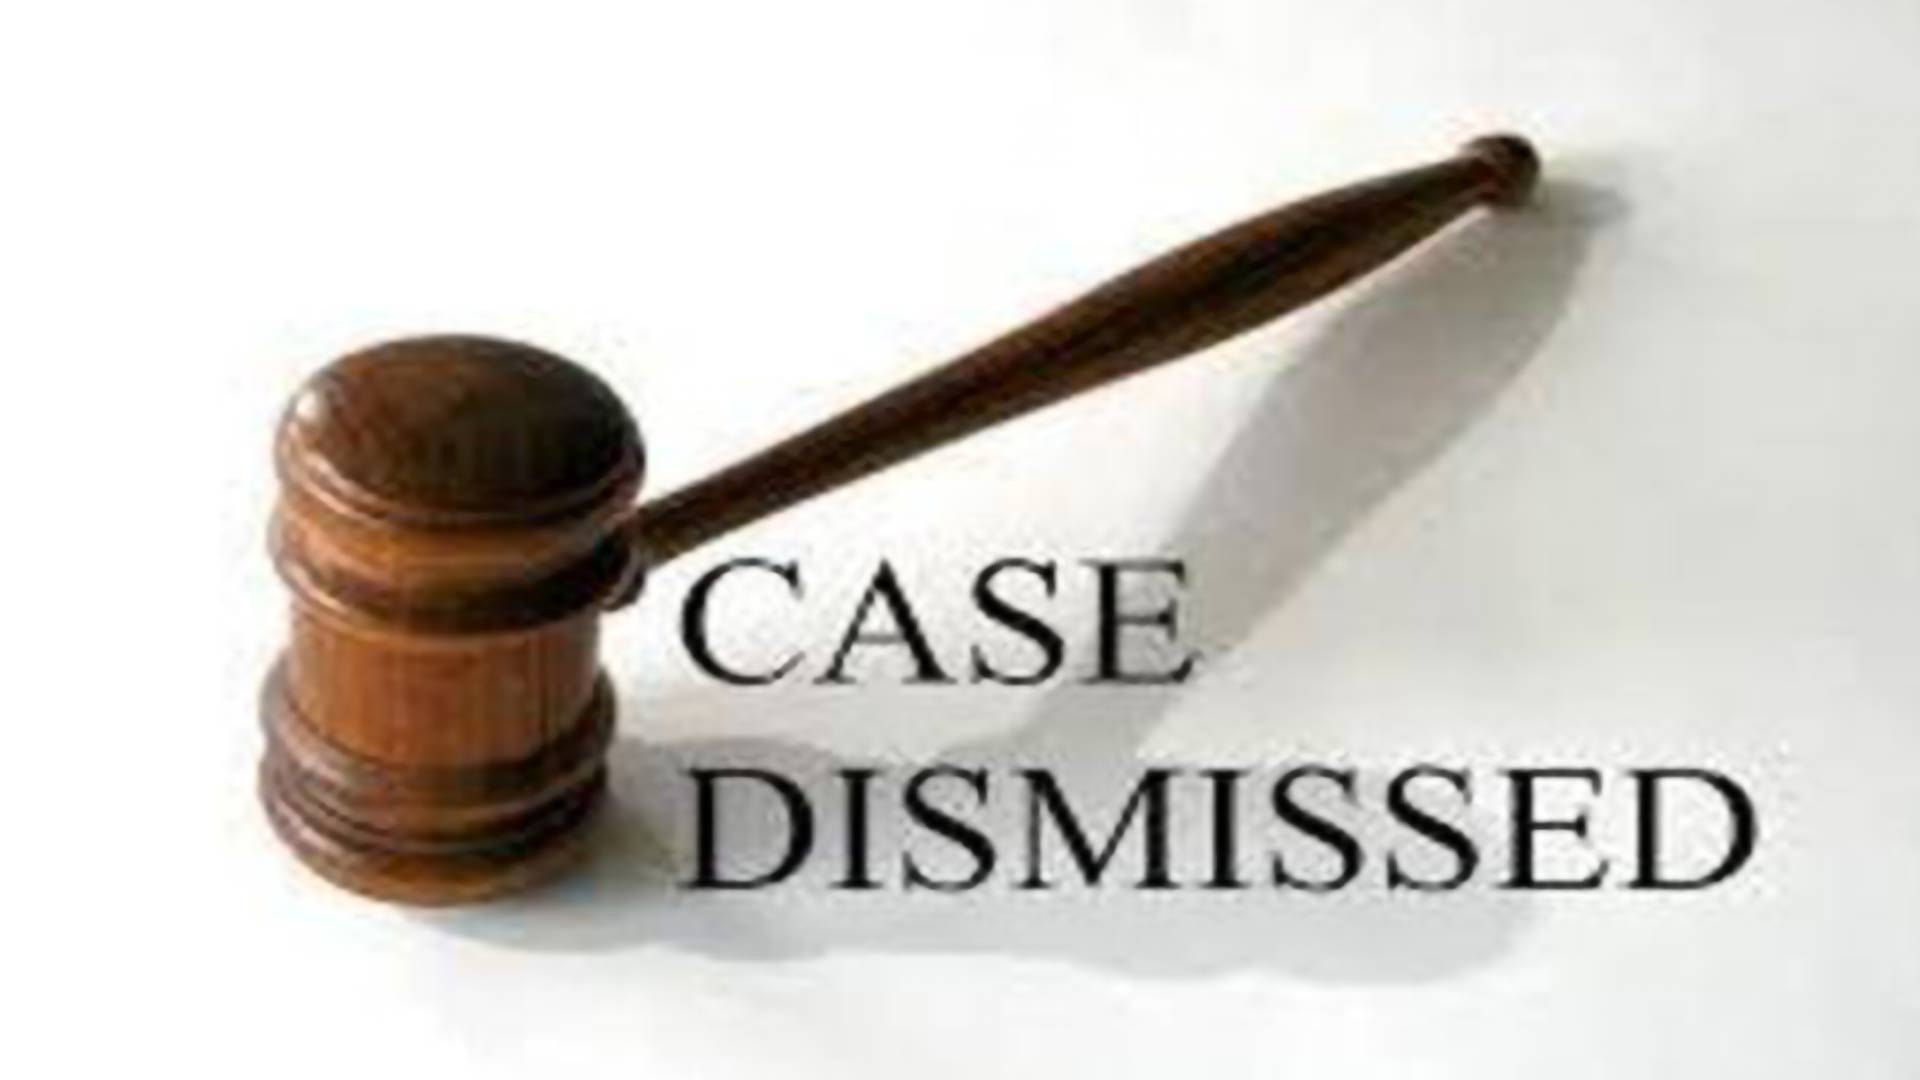 Fresno courts must dismiss the case against you even if you are guilty when your rights are violated in Fresno with the right attorney.